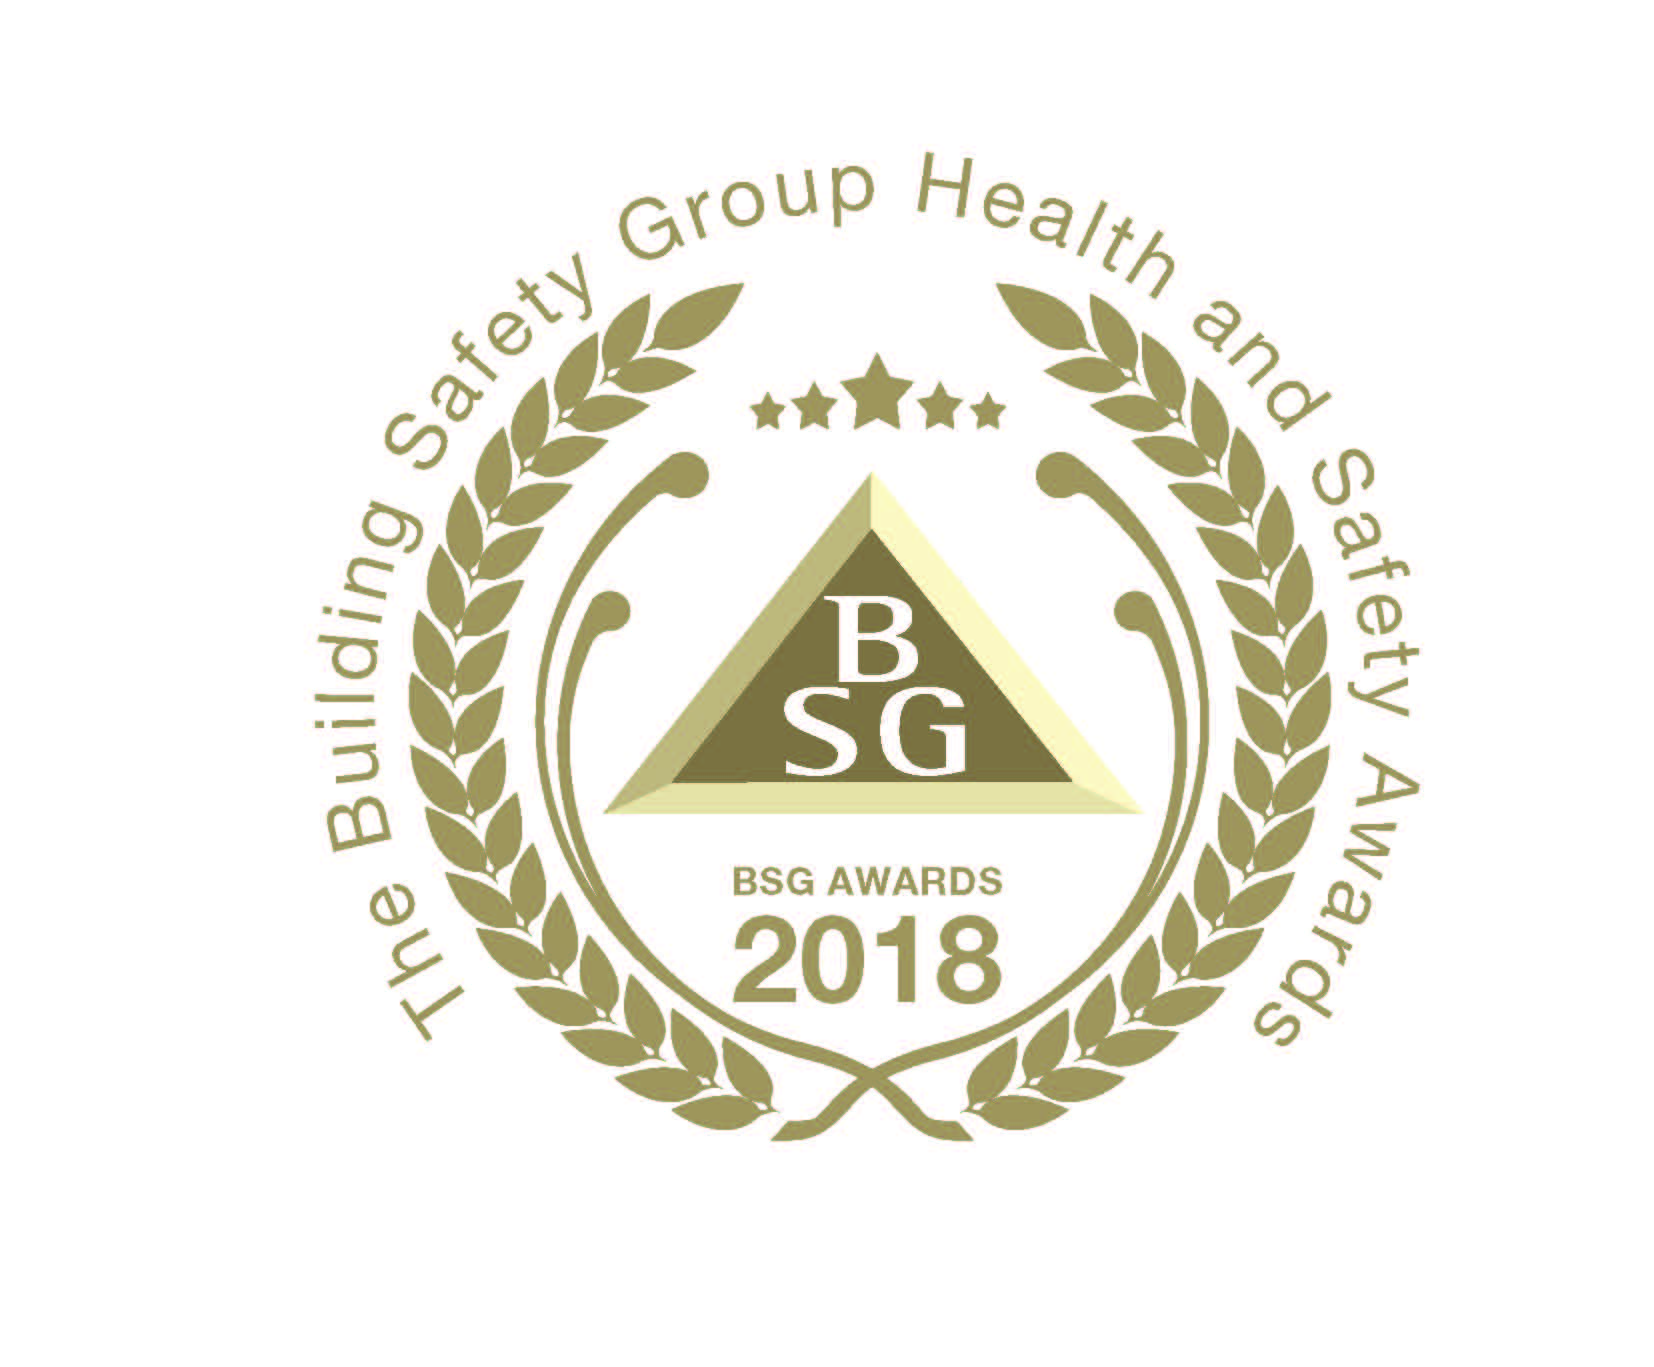 Image result for building safety group health and safety logo